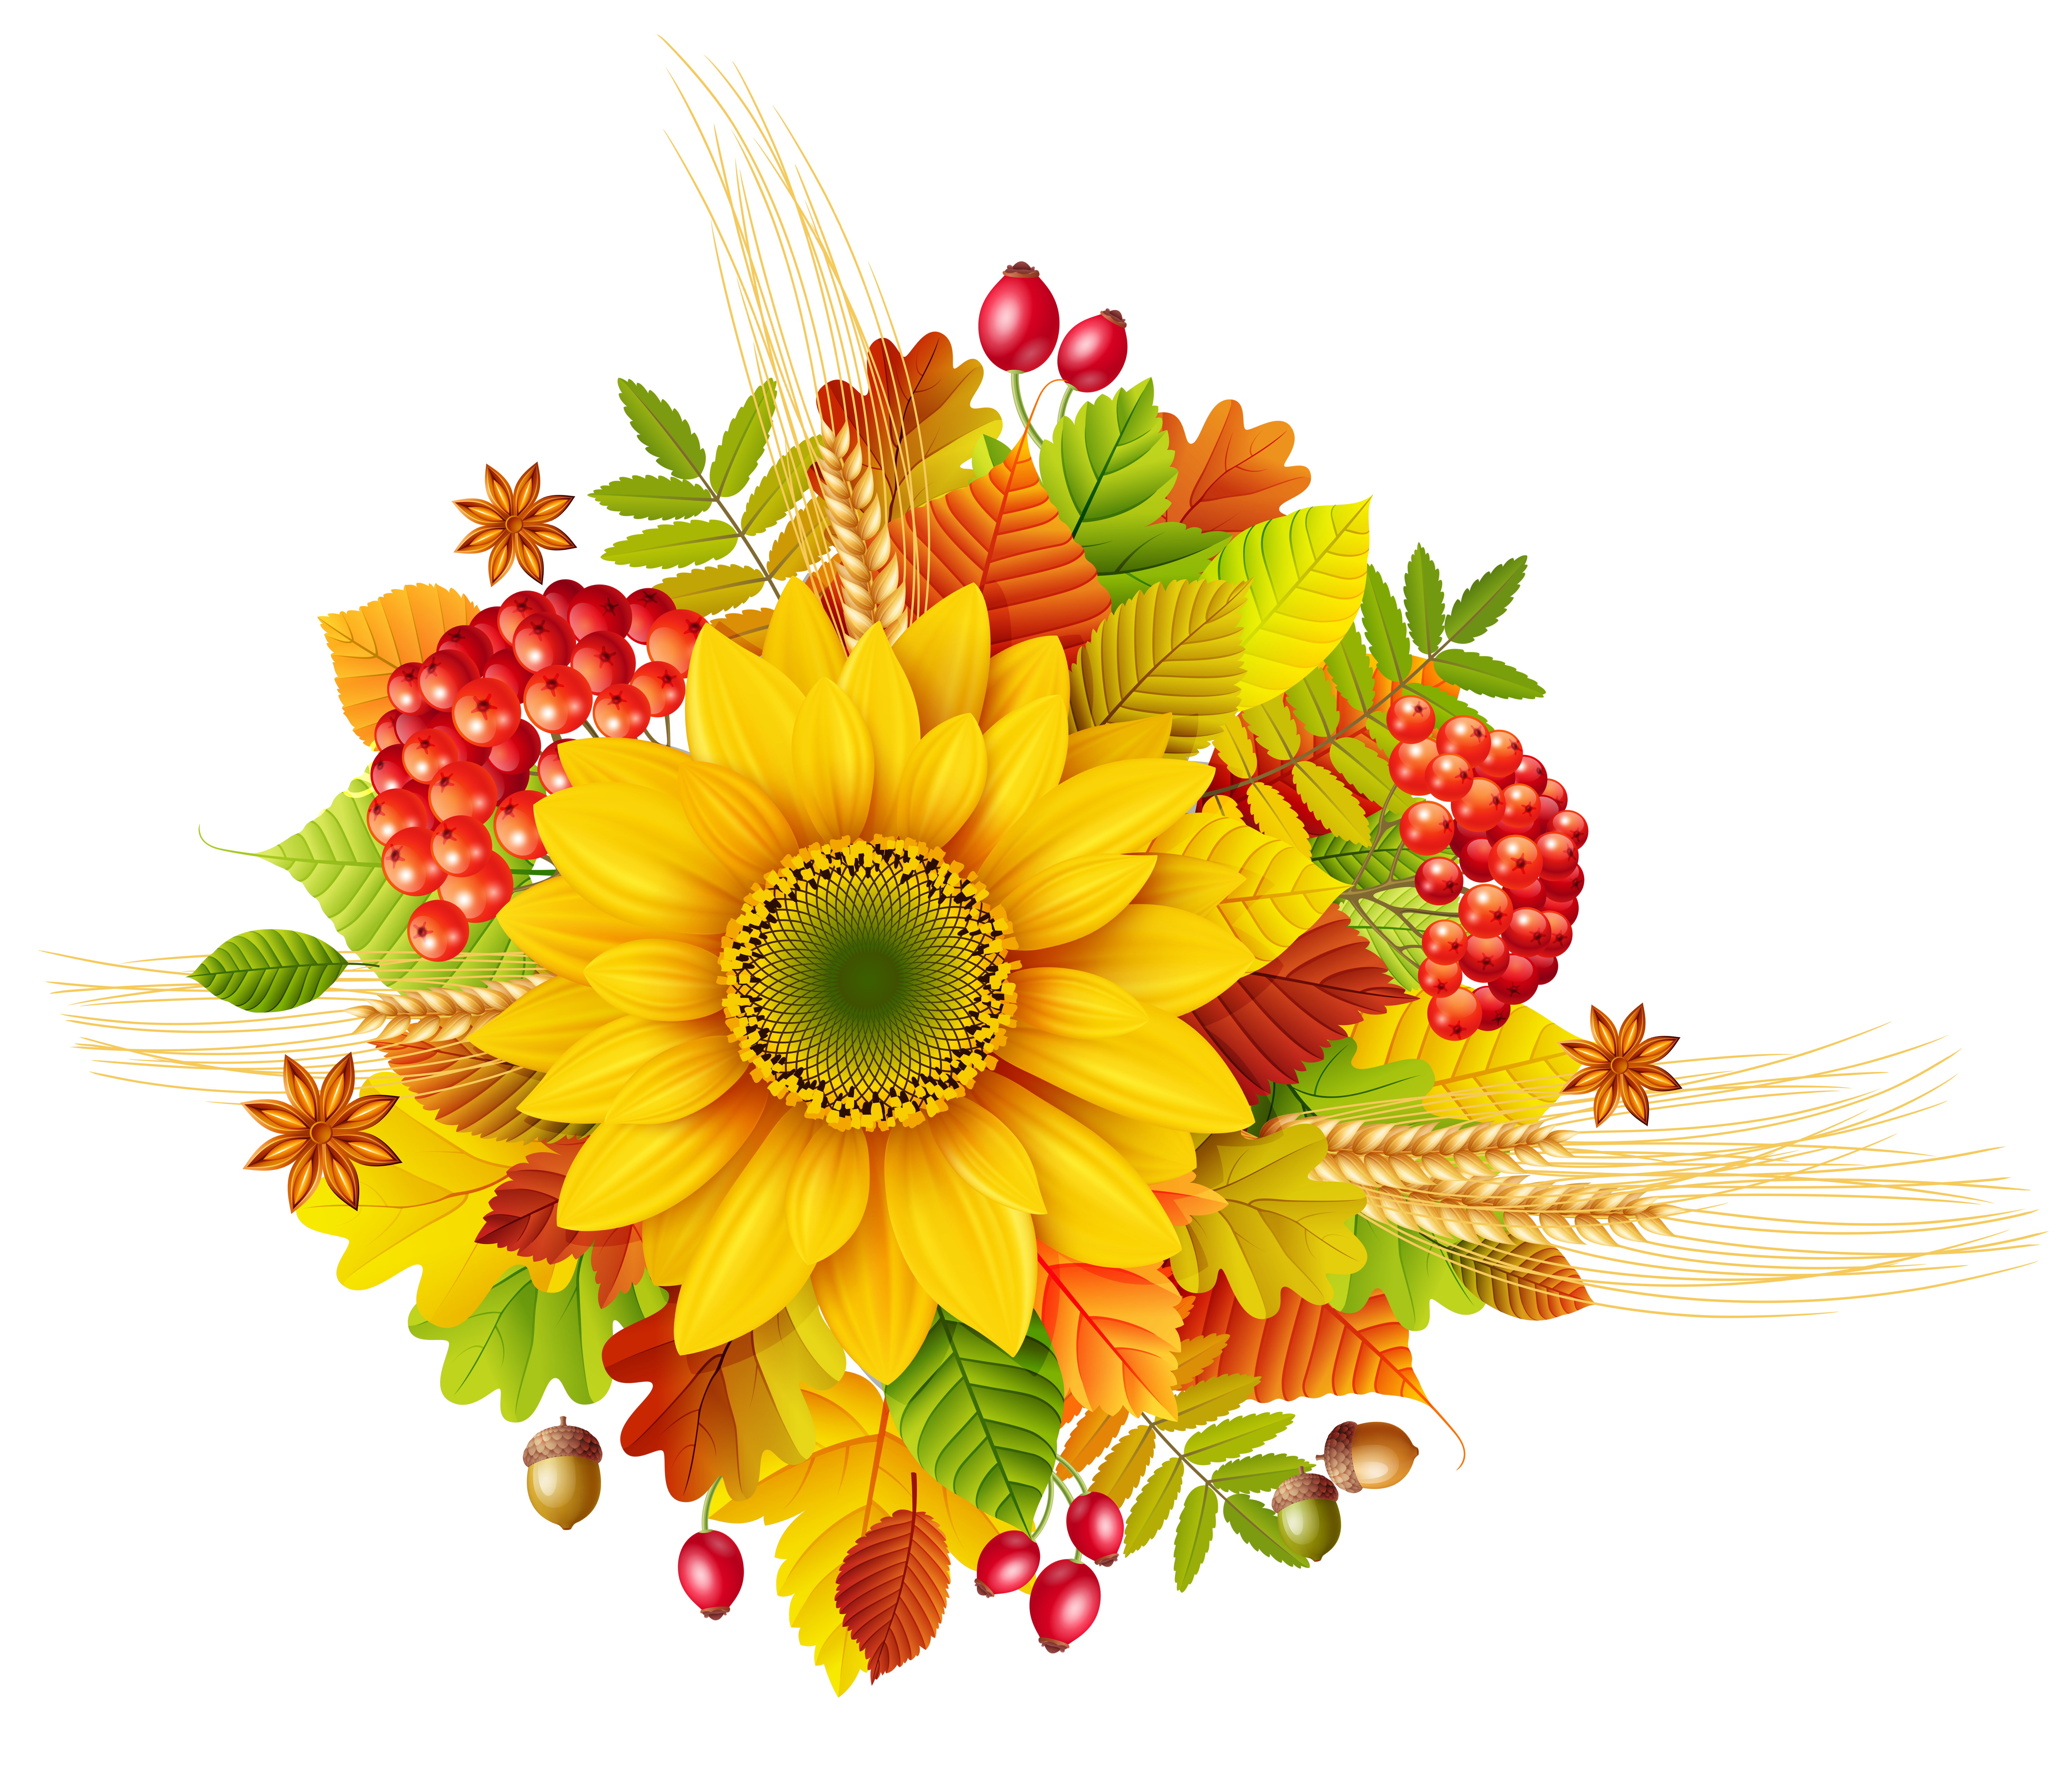 Fall flower png. Autumn decor clipart picture